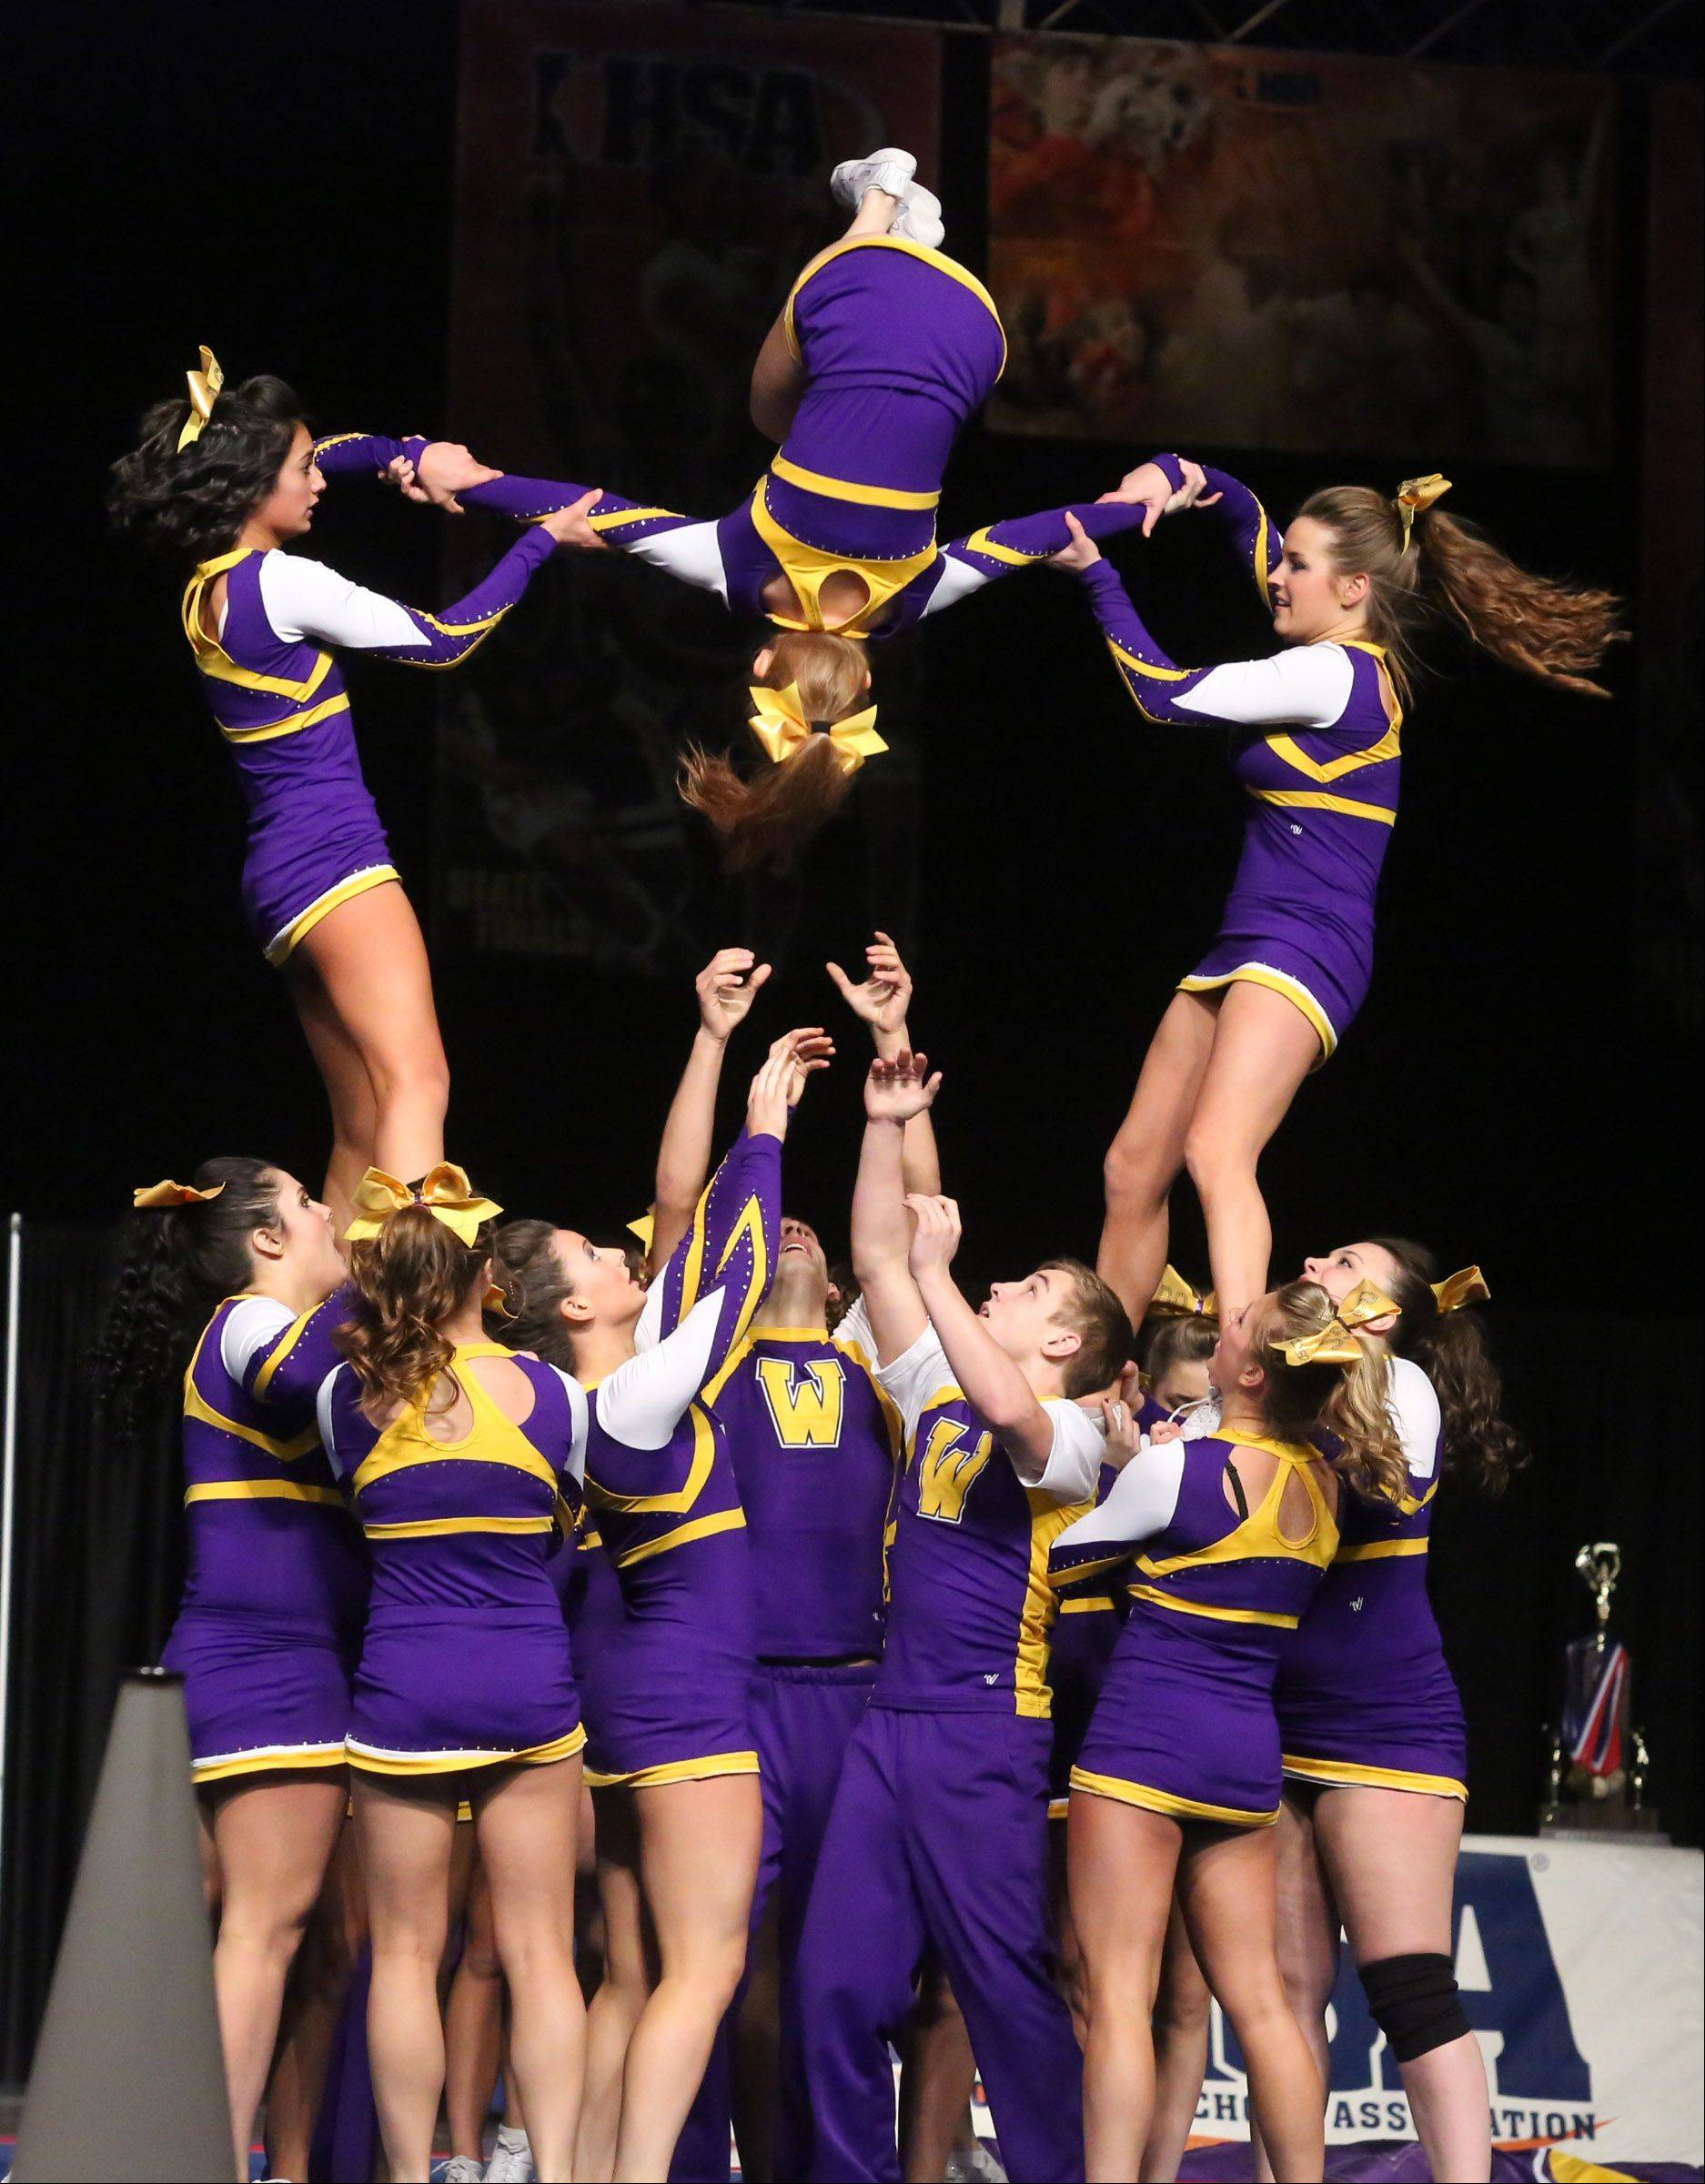 Wauconda High School's cheer team performs in the coed team category.